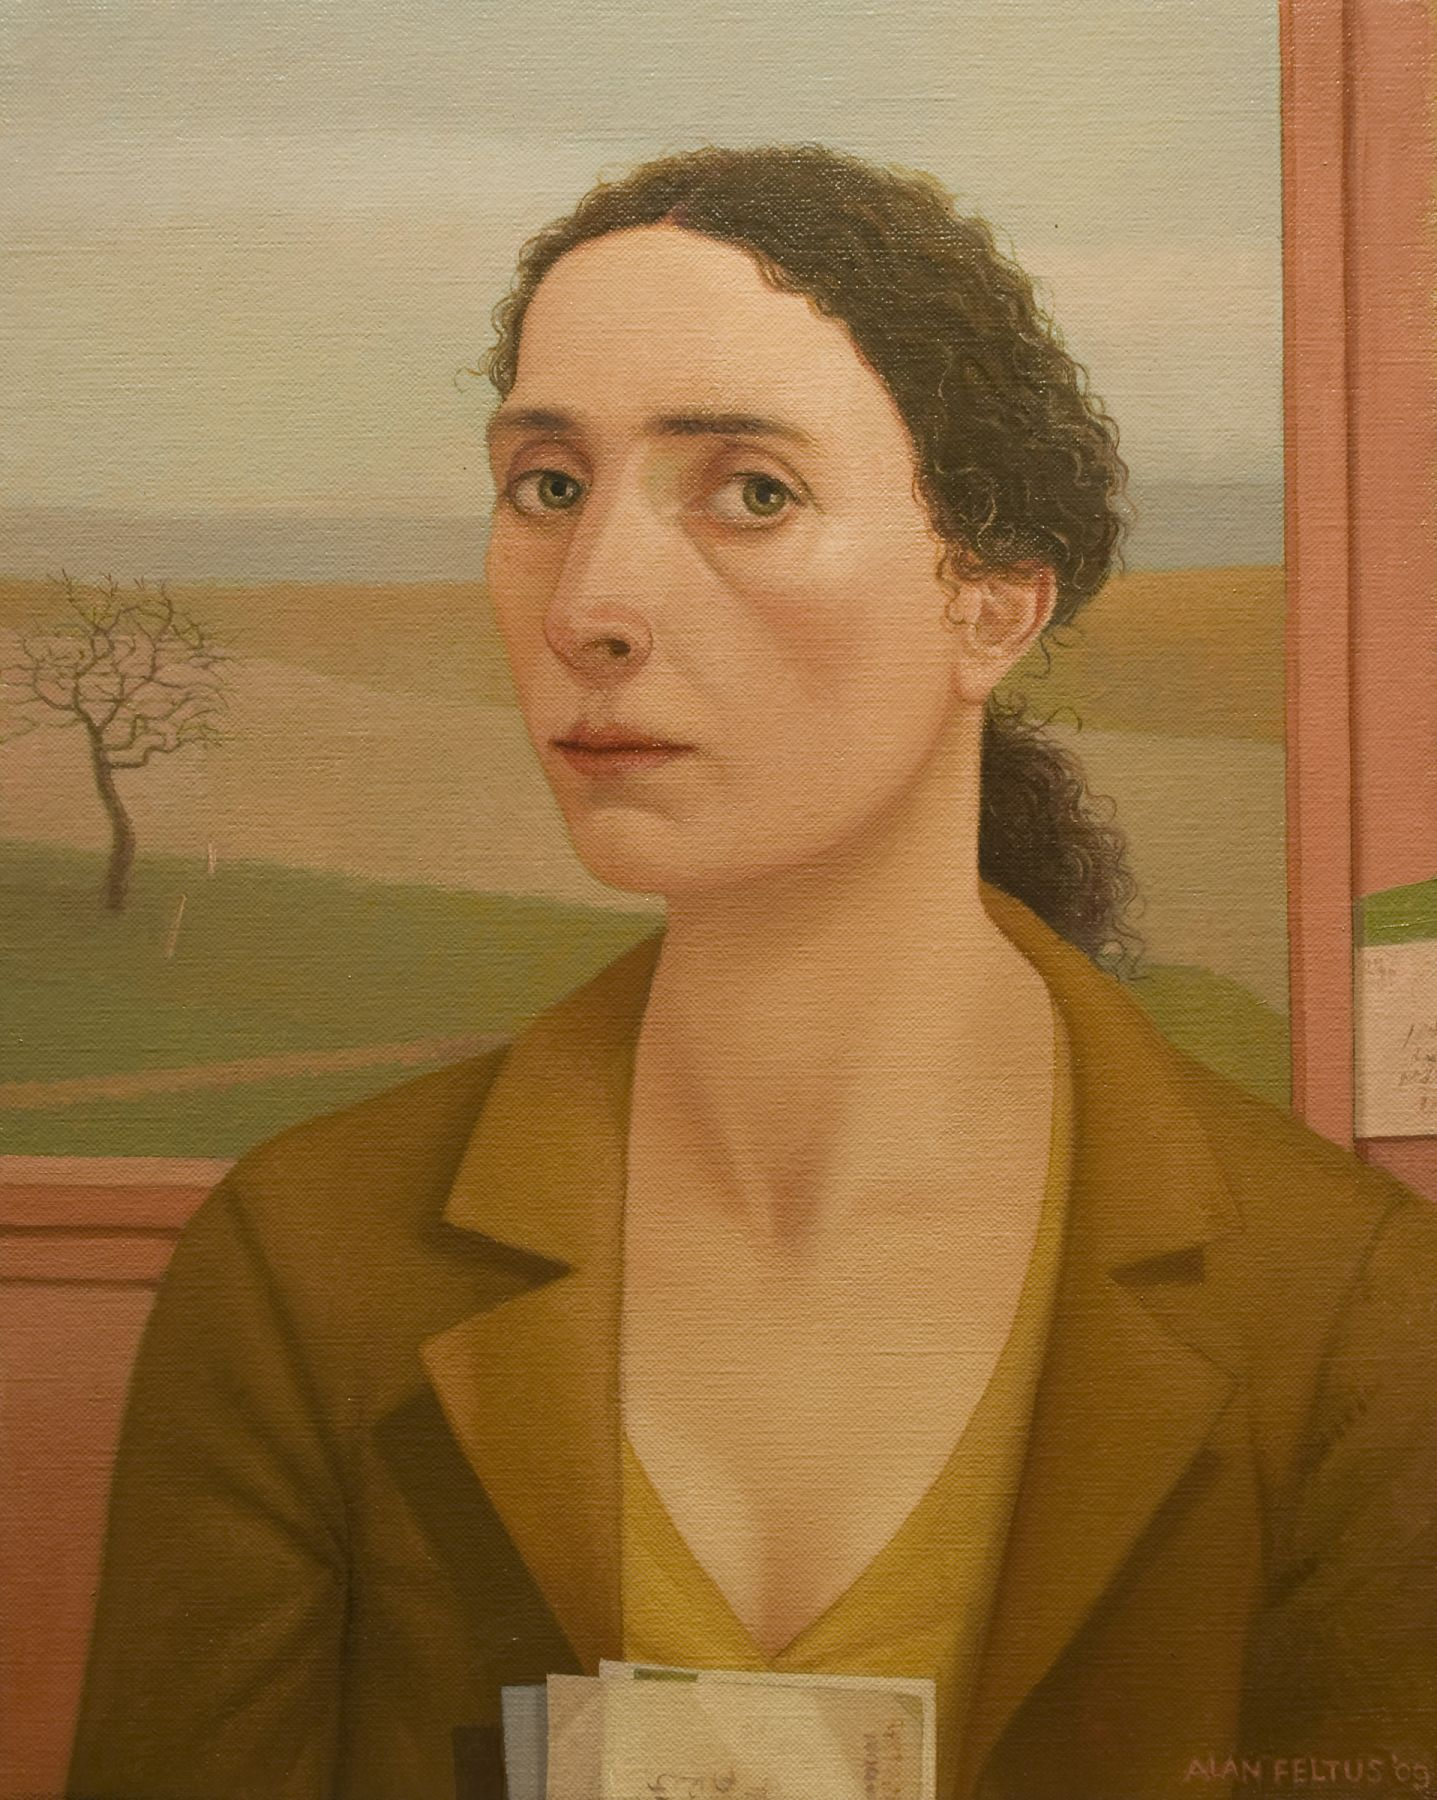 alan feltus, Anna Eva, 2009, oil on canvas, 19 3/4 x 15 3/4 inches